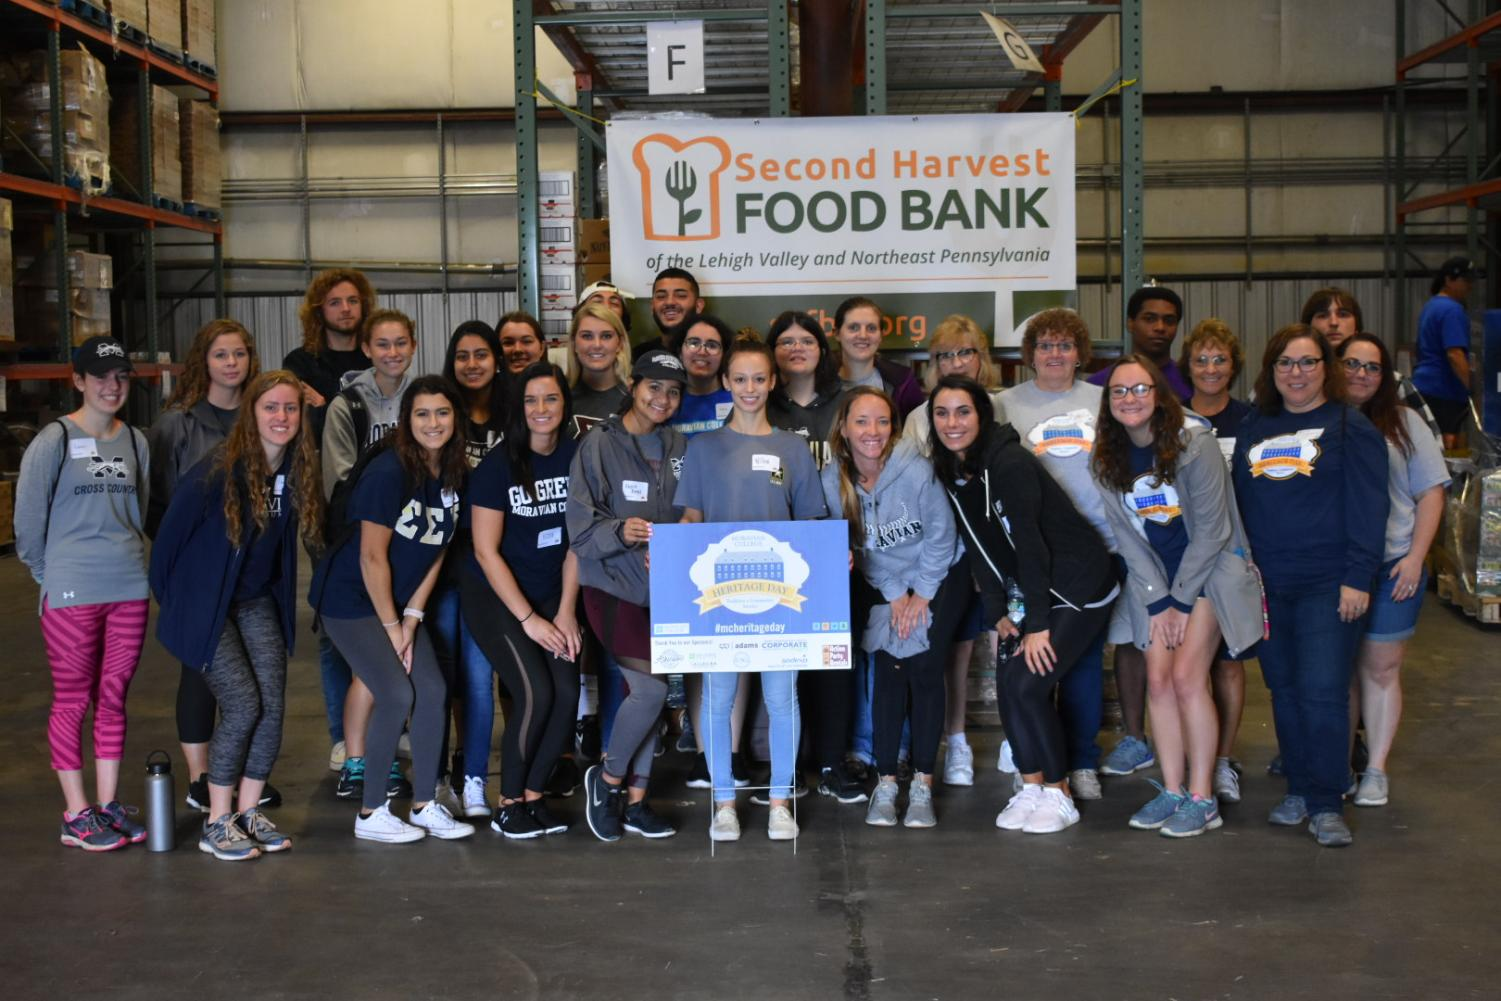 Moravian College students volunteering at Second Harvest Food Bank.